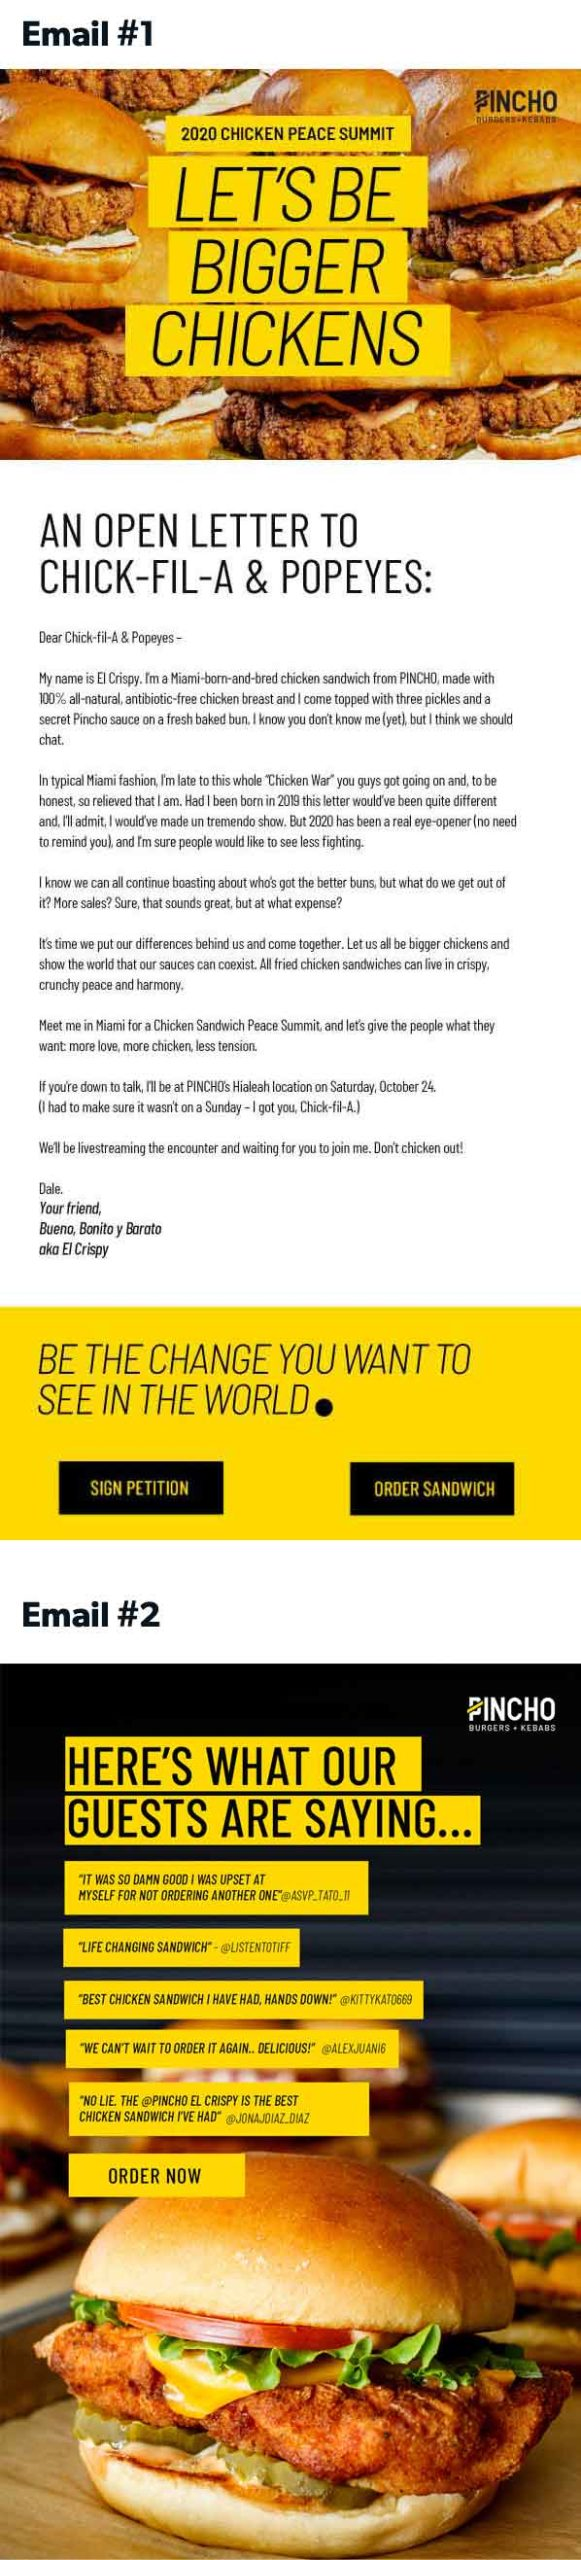 PINCHO Let's be bigger chickens campaign emails (2x)